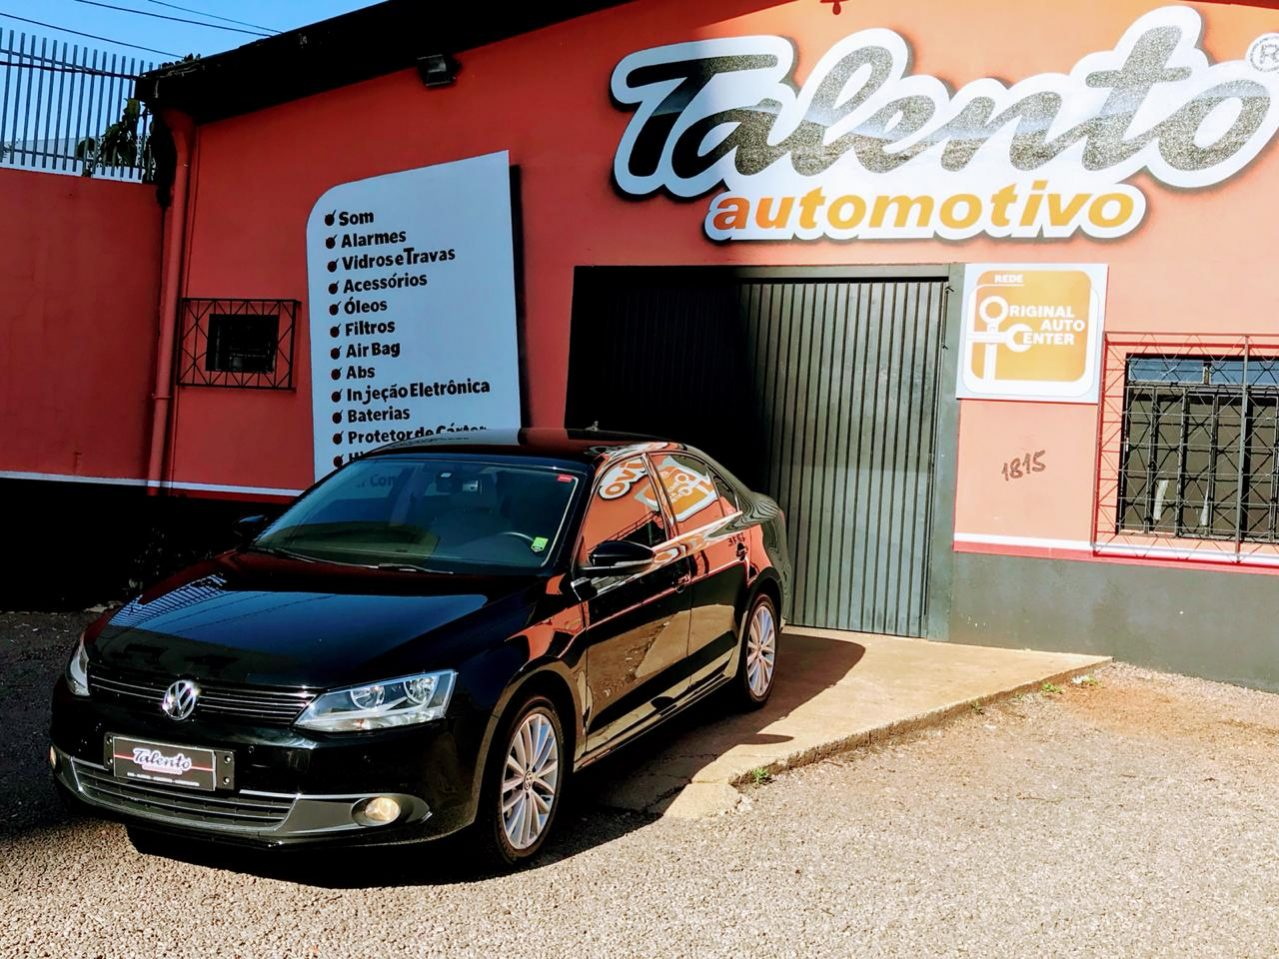 Talento-automotivo-cascavel-pr-vw-jetta